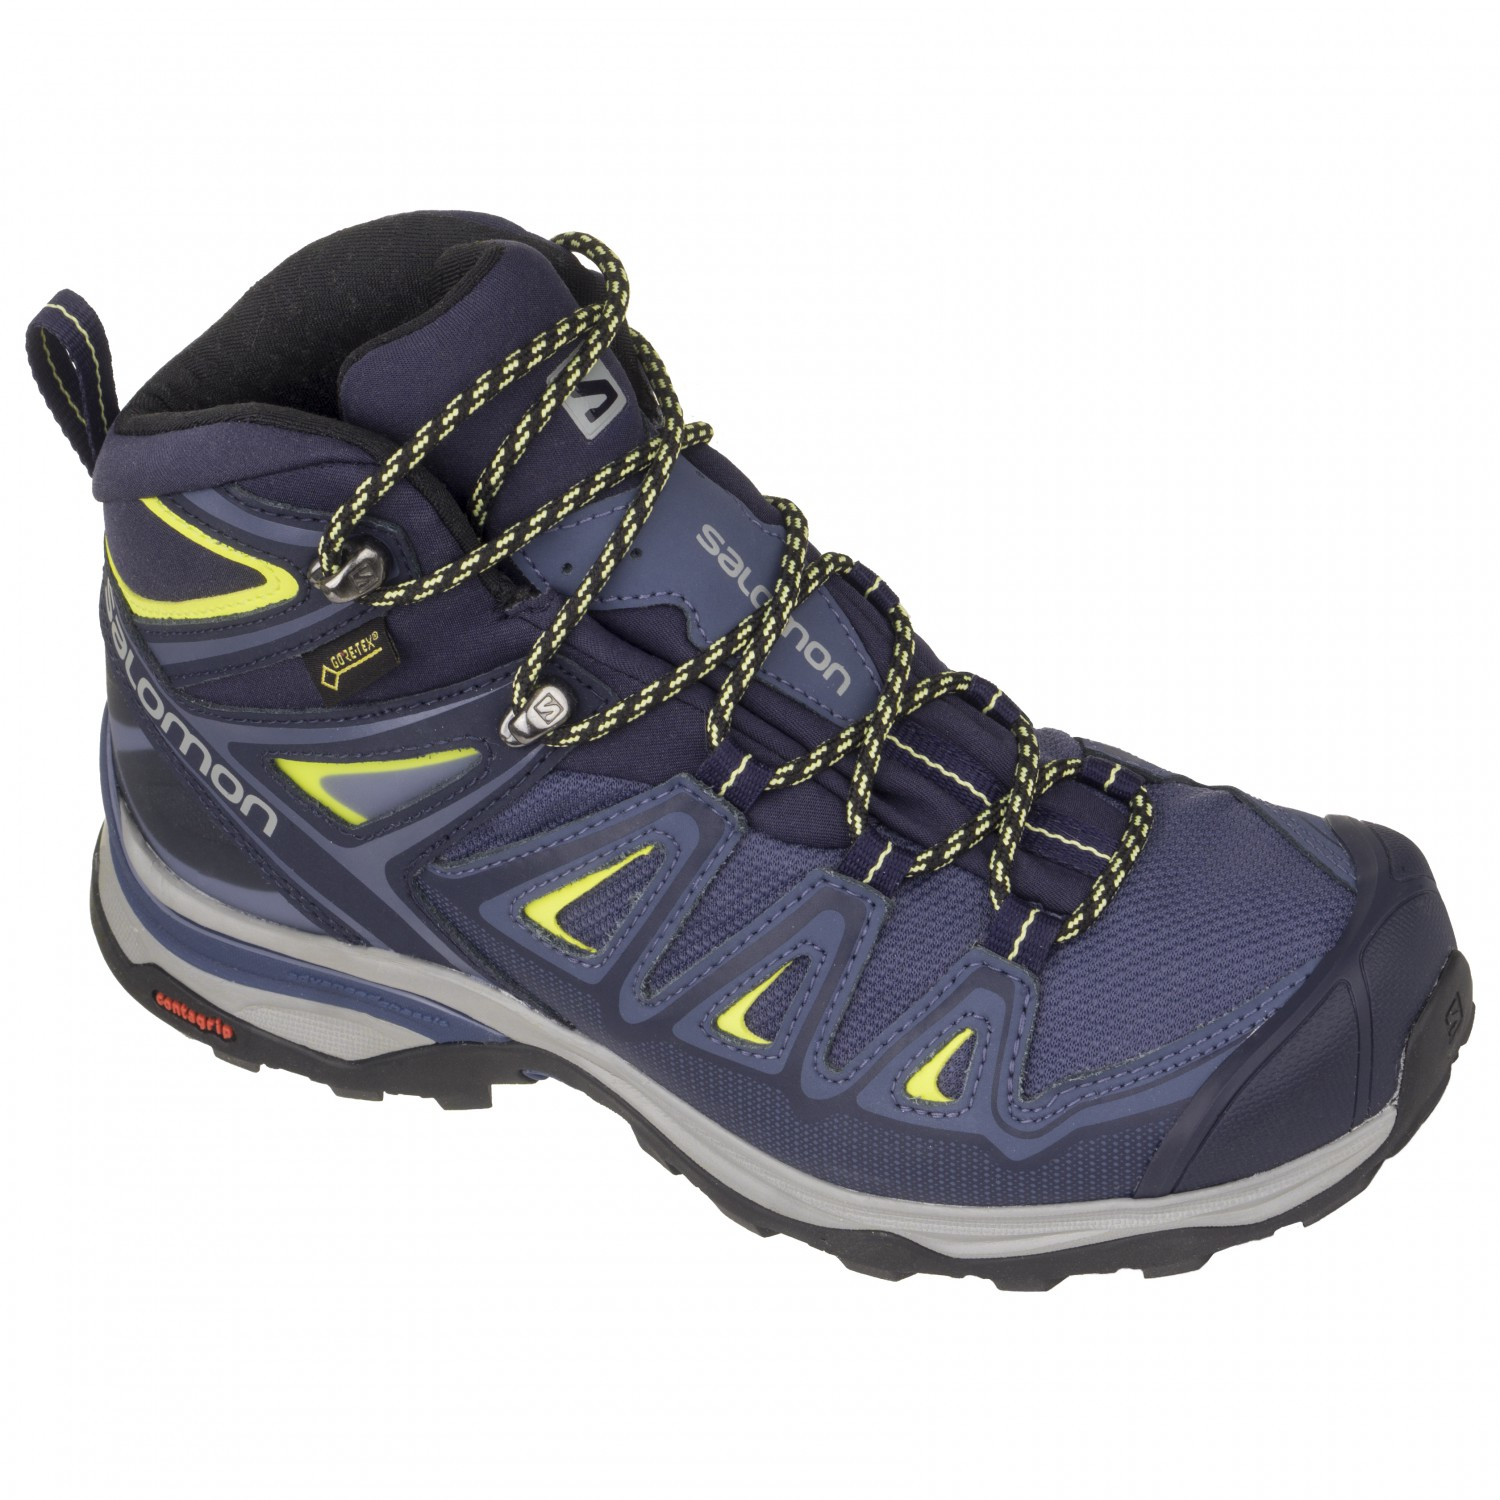 7b1ecdb6 Salomon - Women's X Ultra 3 Mid GTX - Walking boots - Magnet / Black /  Monument | 4 (UK)